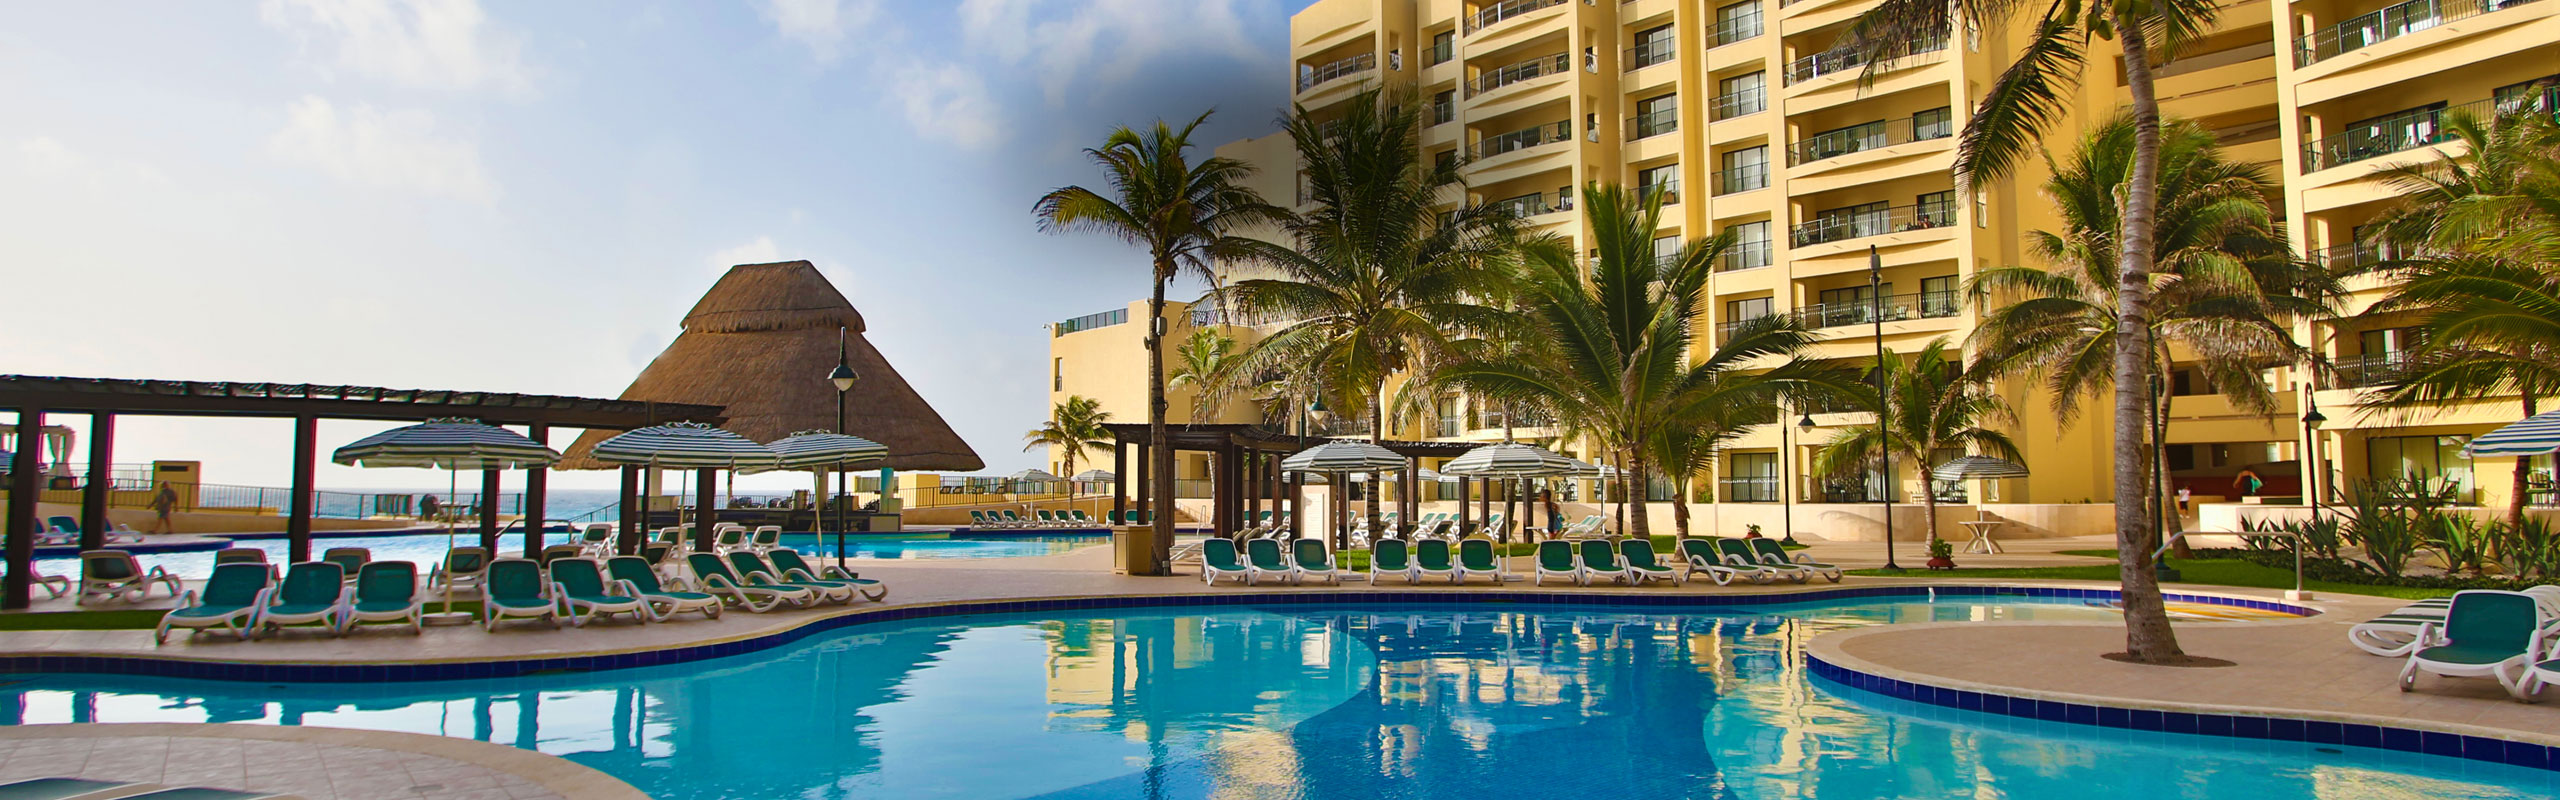 The Royal Sands Cancun family resort